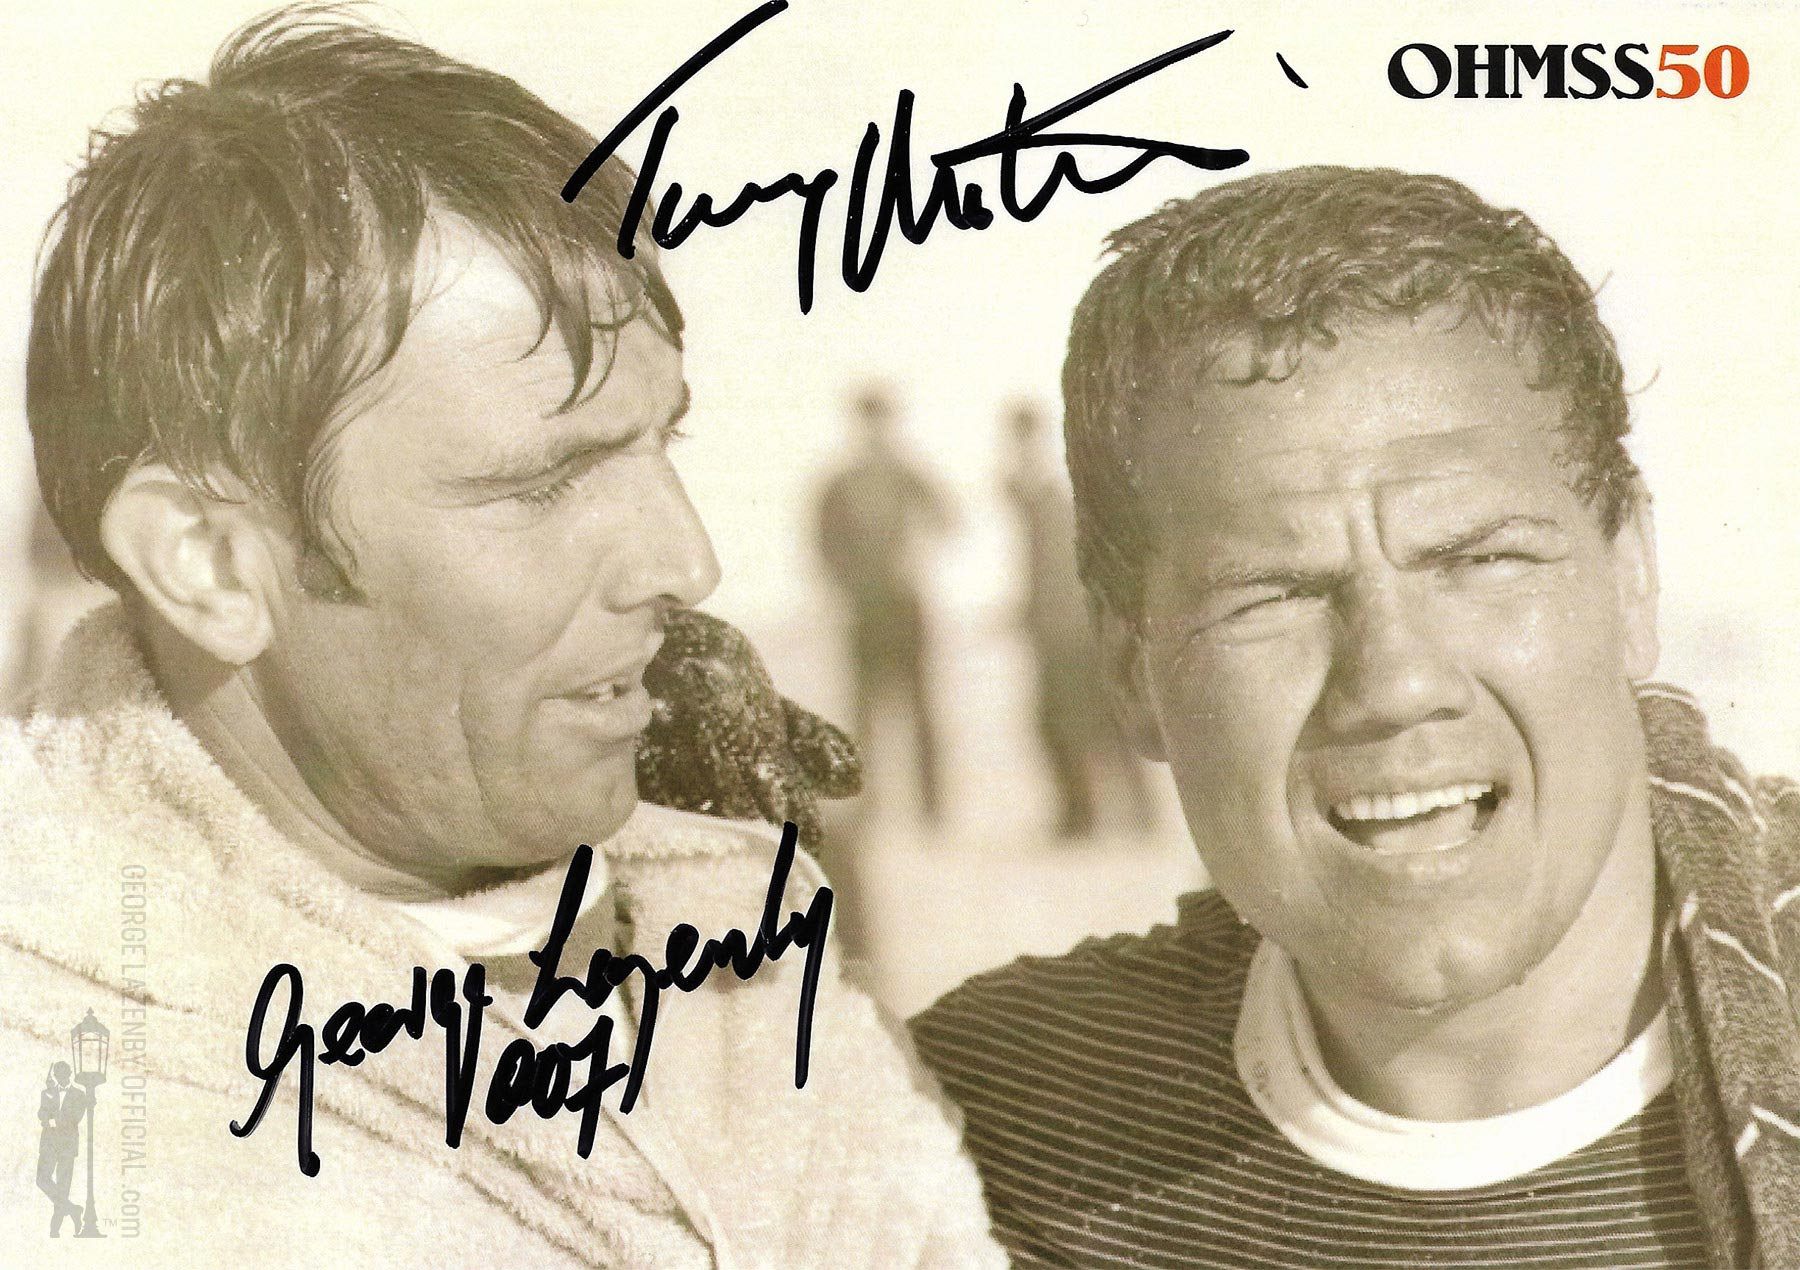 OHMSS 50 George Lazenby signed photograph GLOHMSS50-06